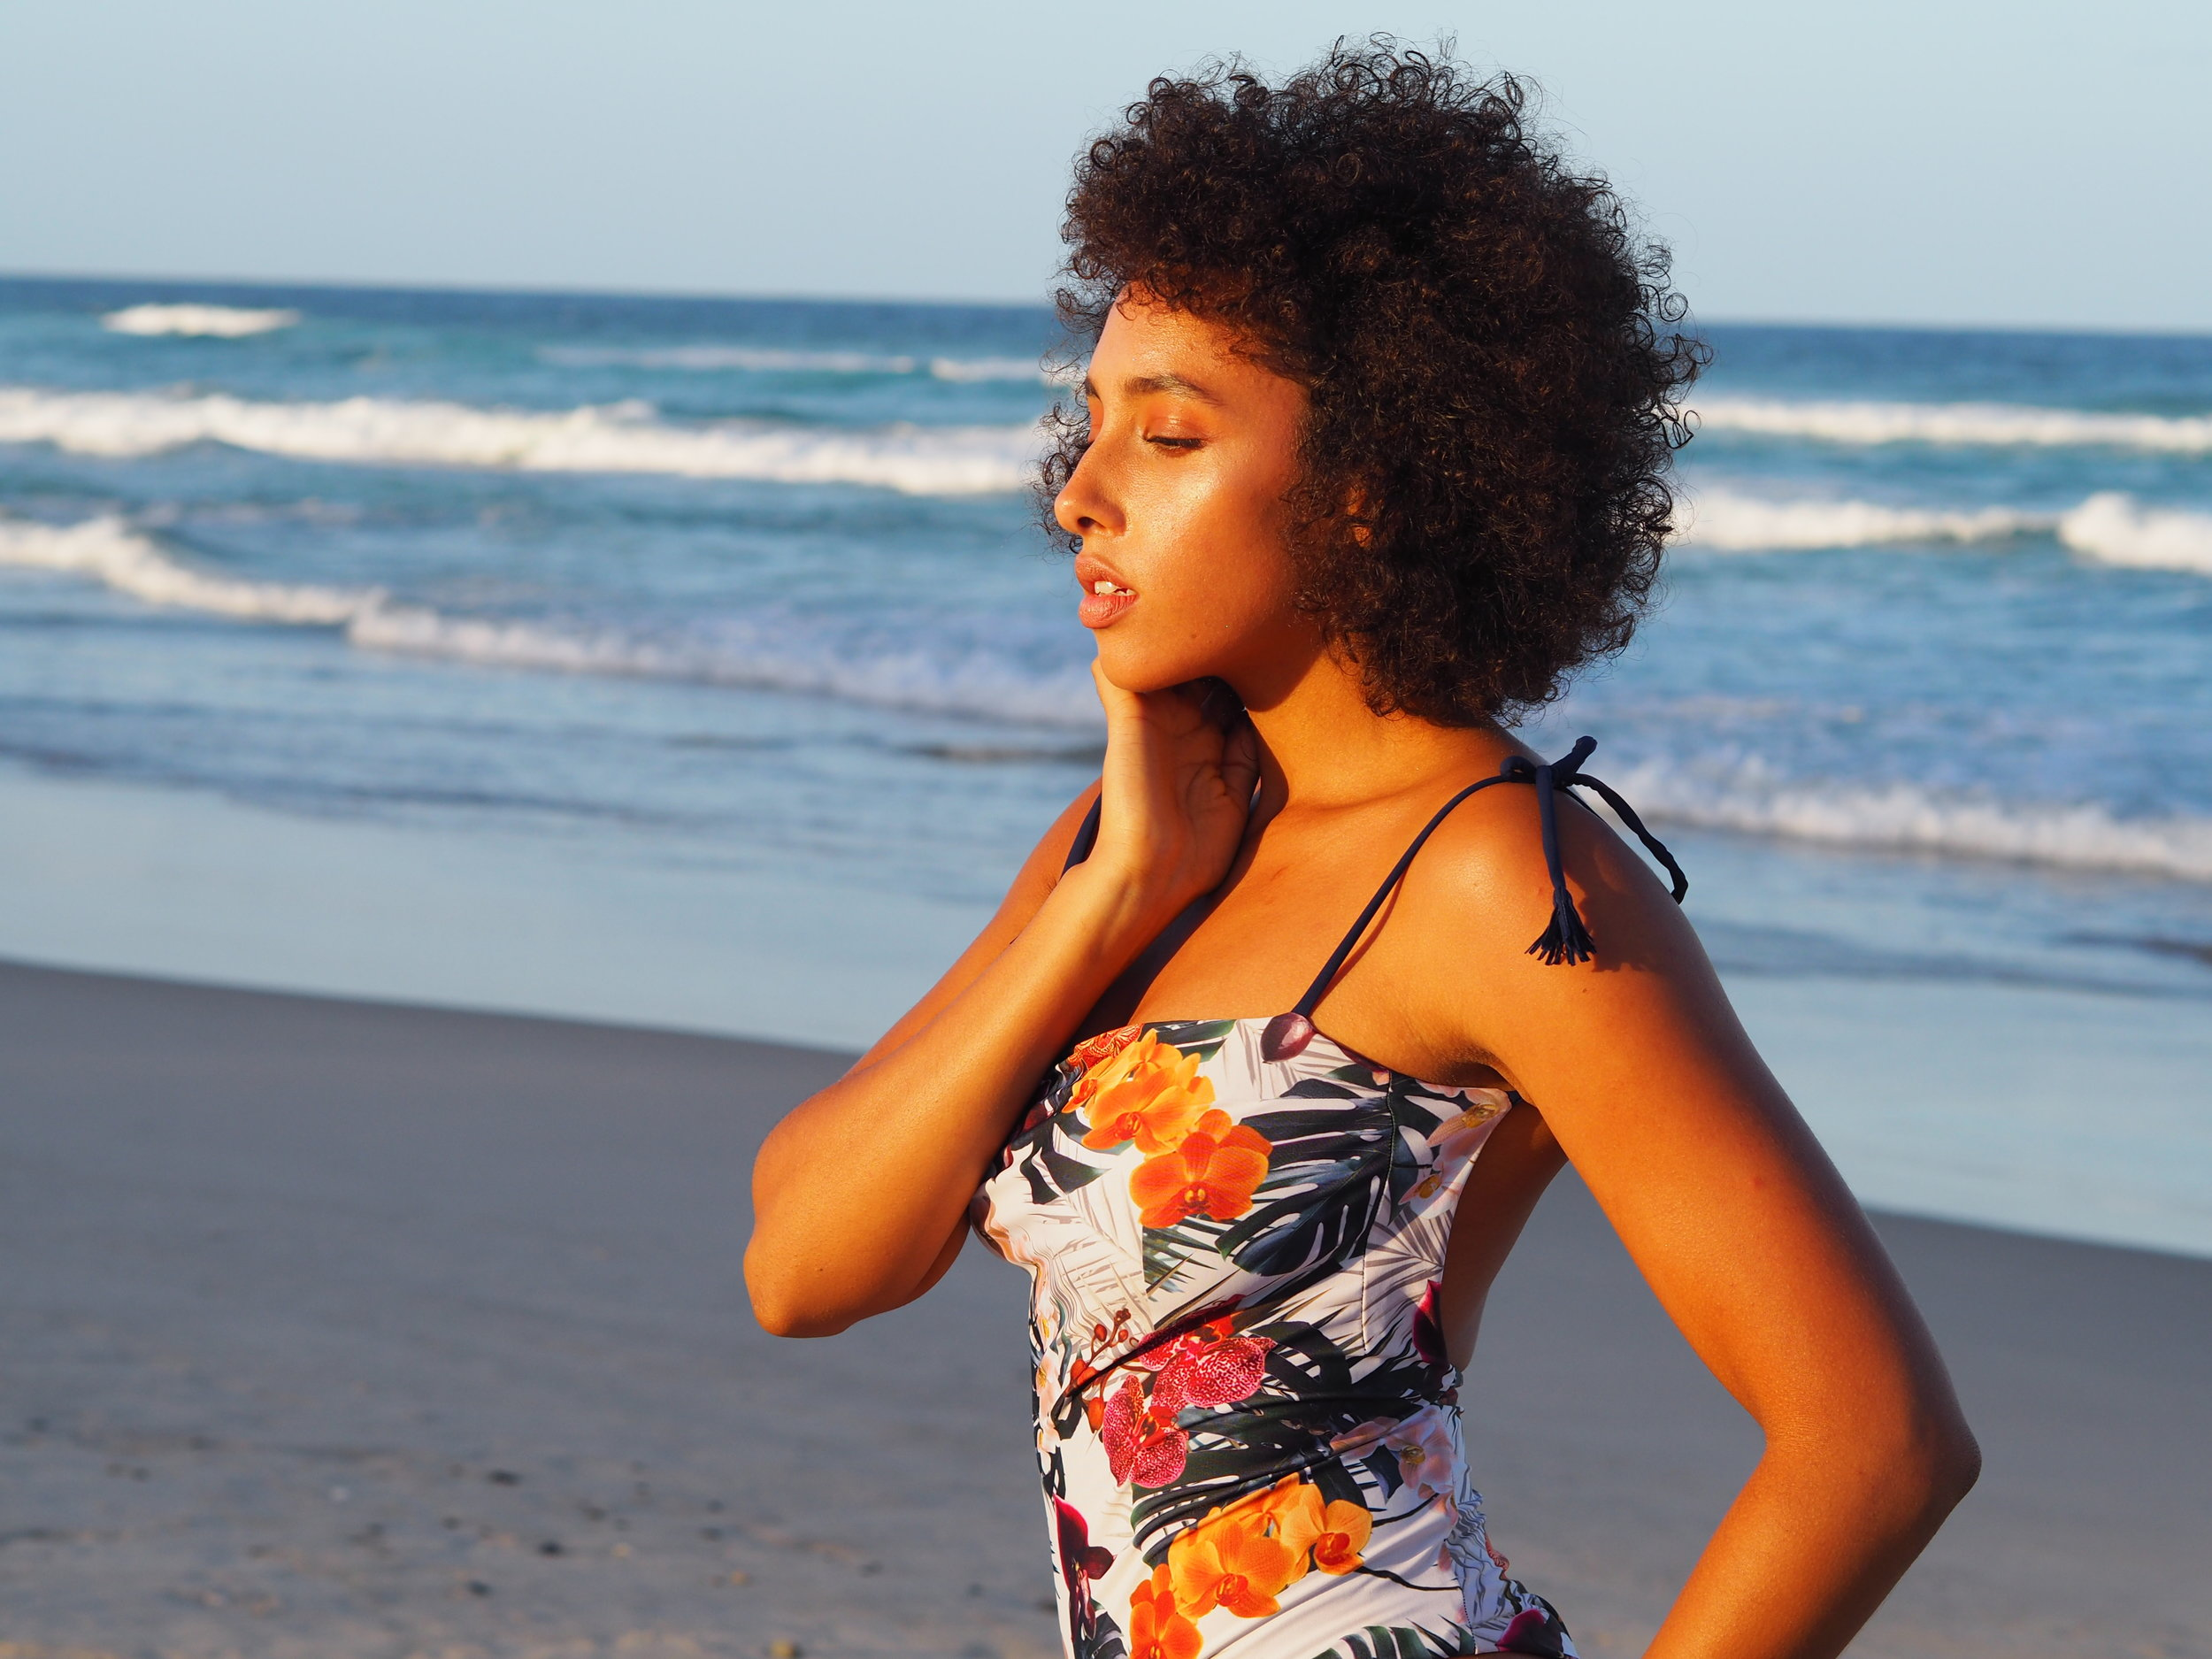 Danielle Sams with the  Sandman reversible onepiece in Orchid print  at Byron Bay